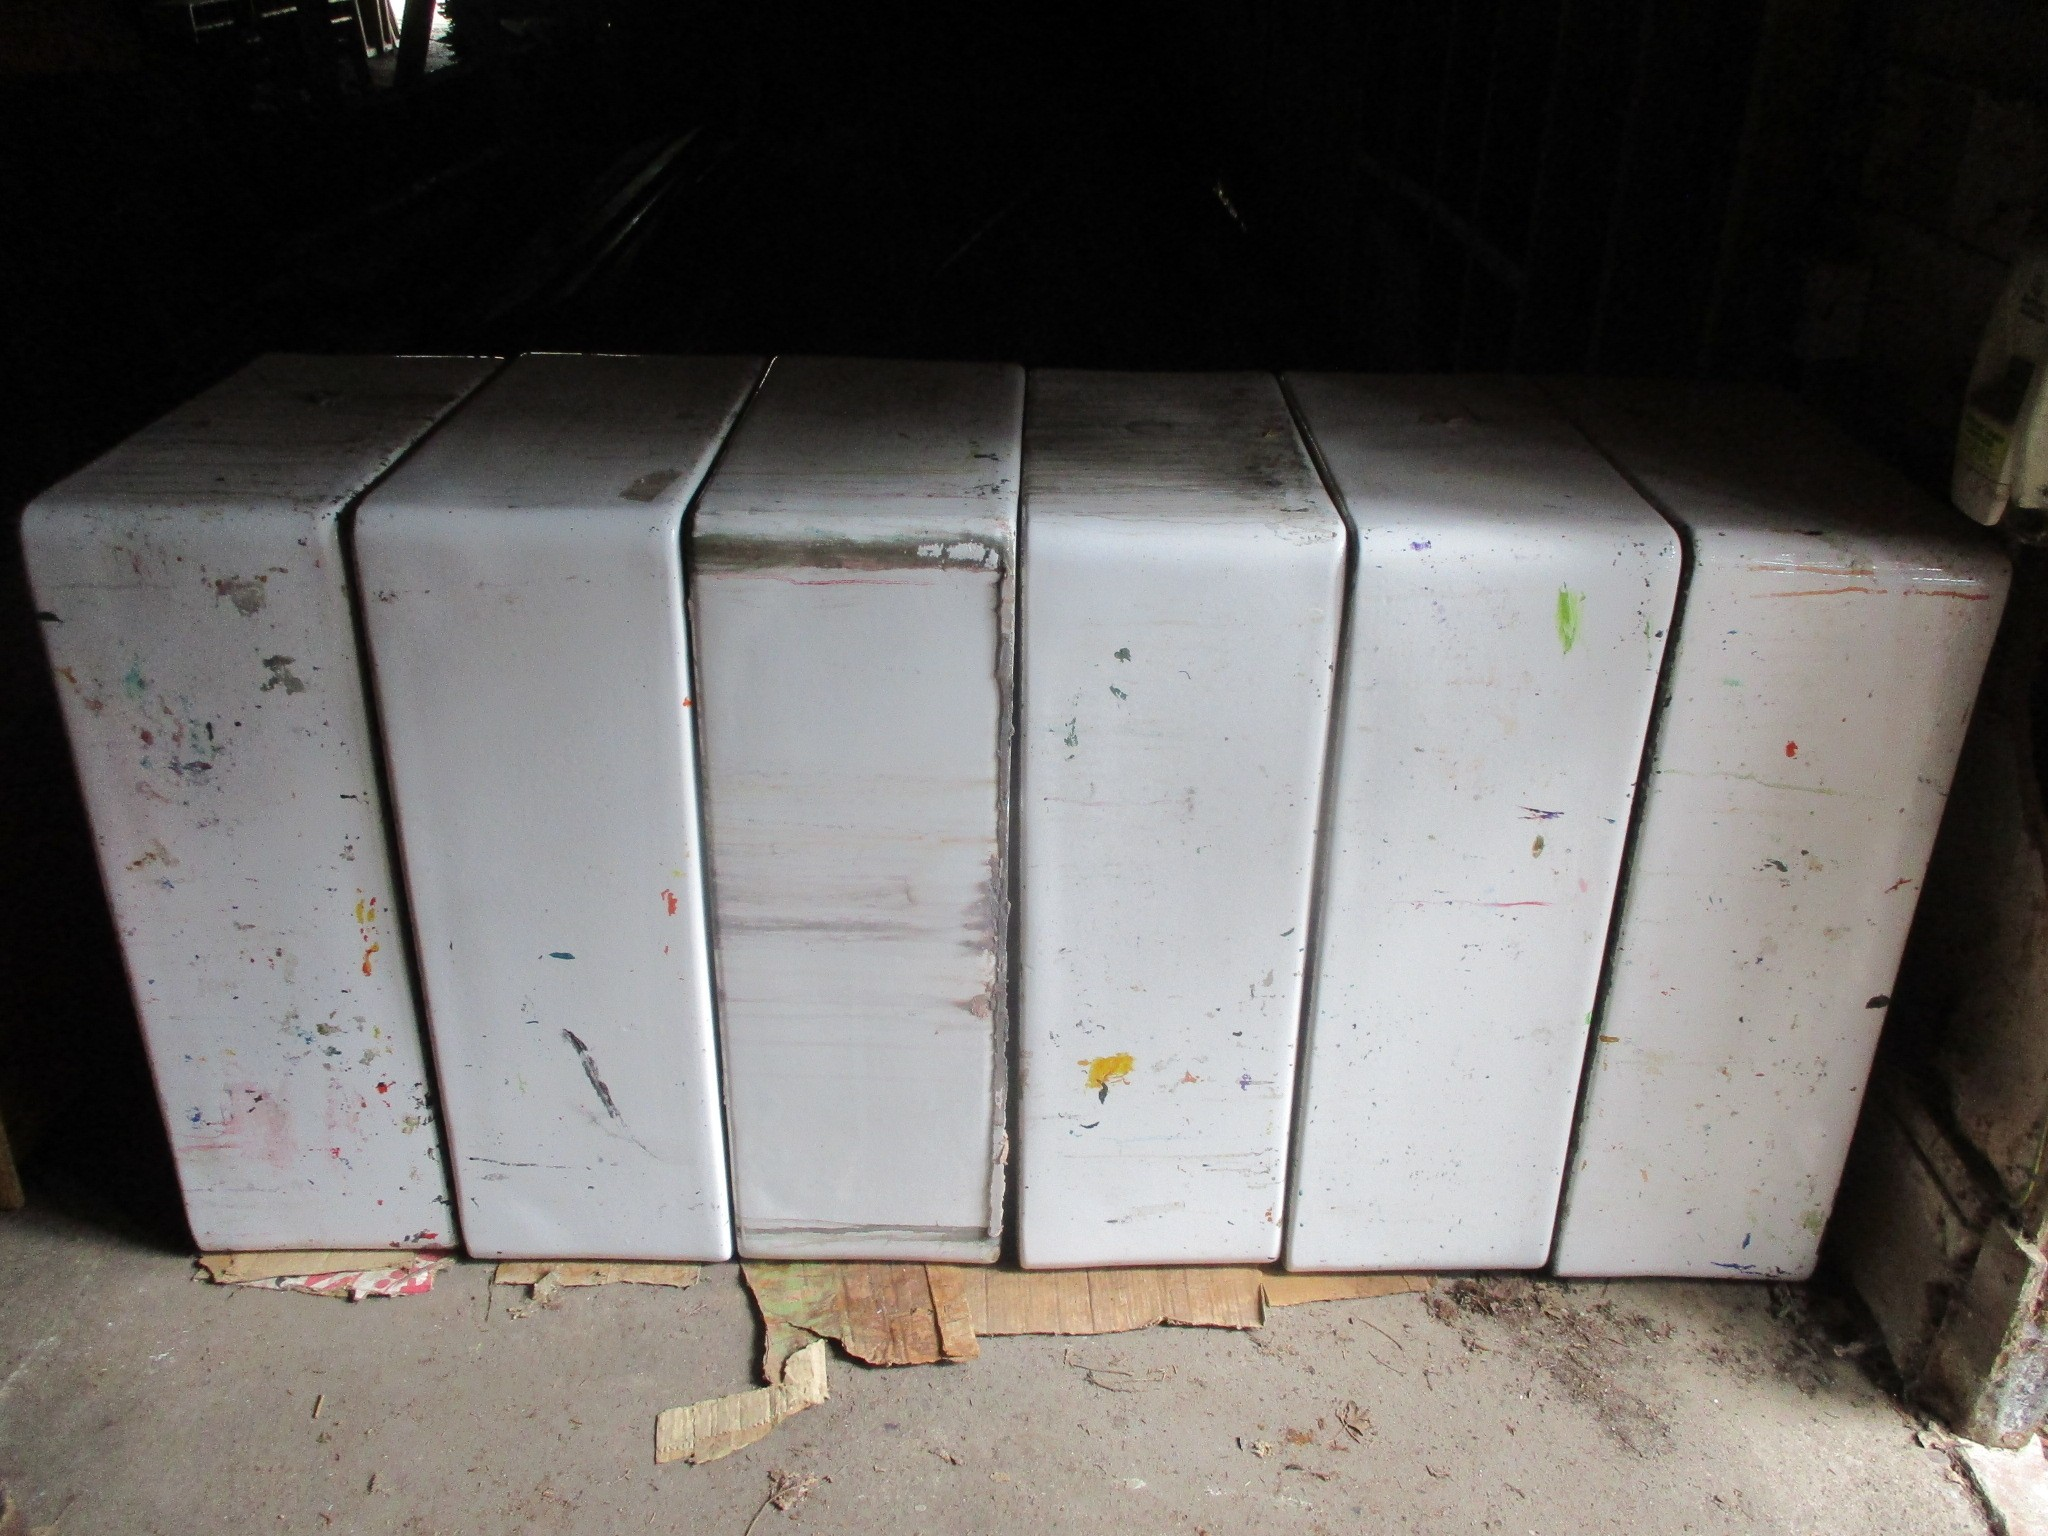 Butler Sinks 3ft x 2ft x 1 ft Twyfords - 6 available